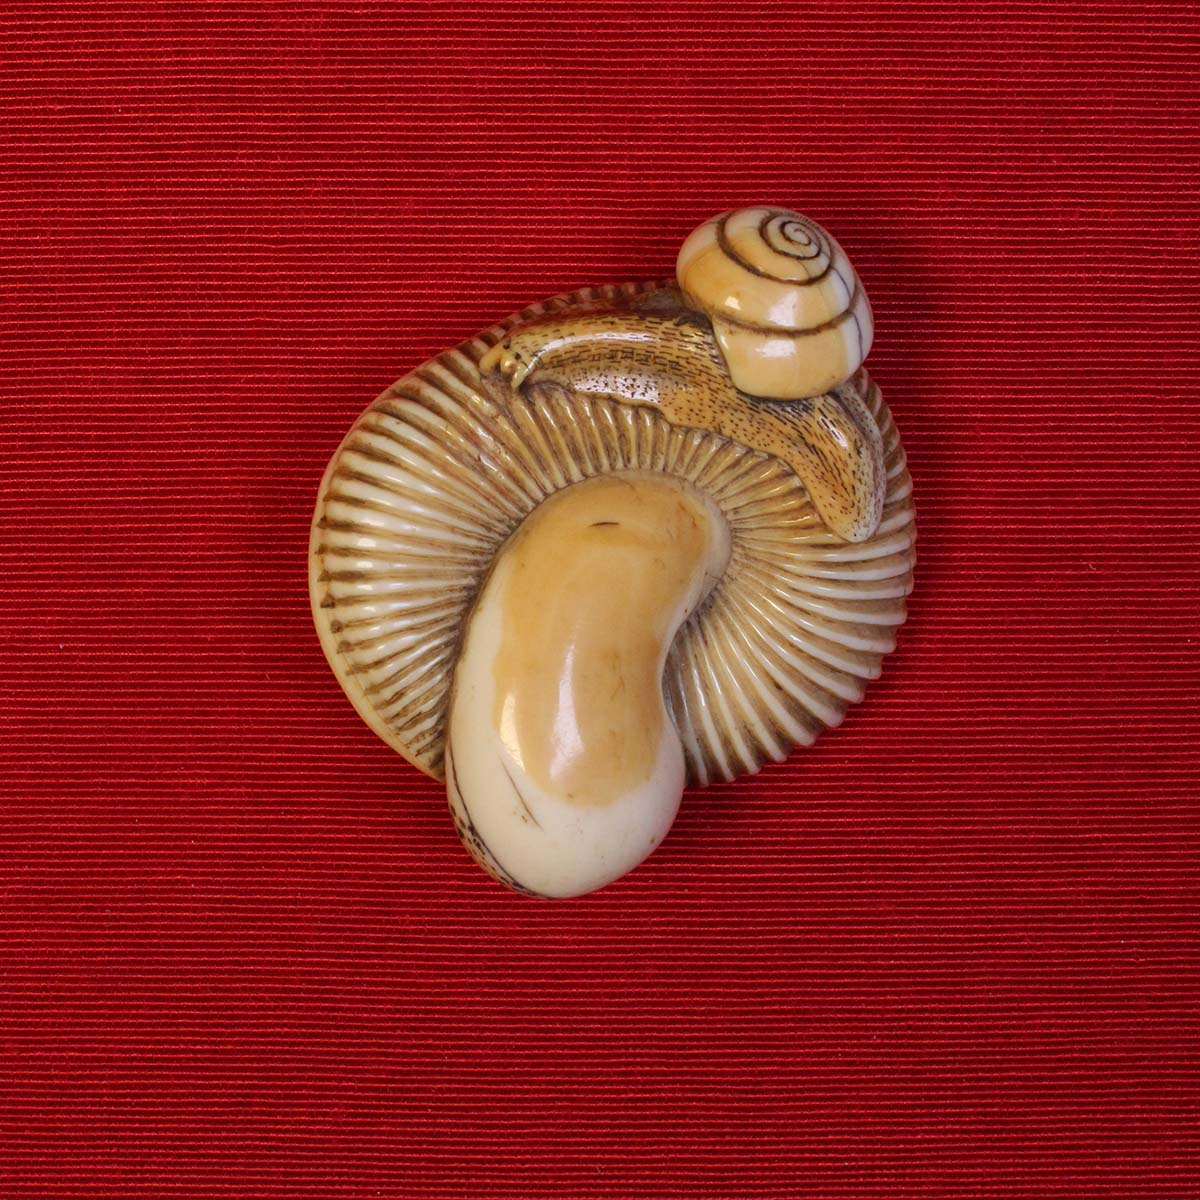 Ivory netsuke of a snail on a mushroom_MR2857